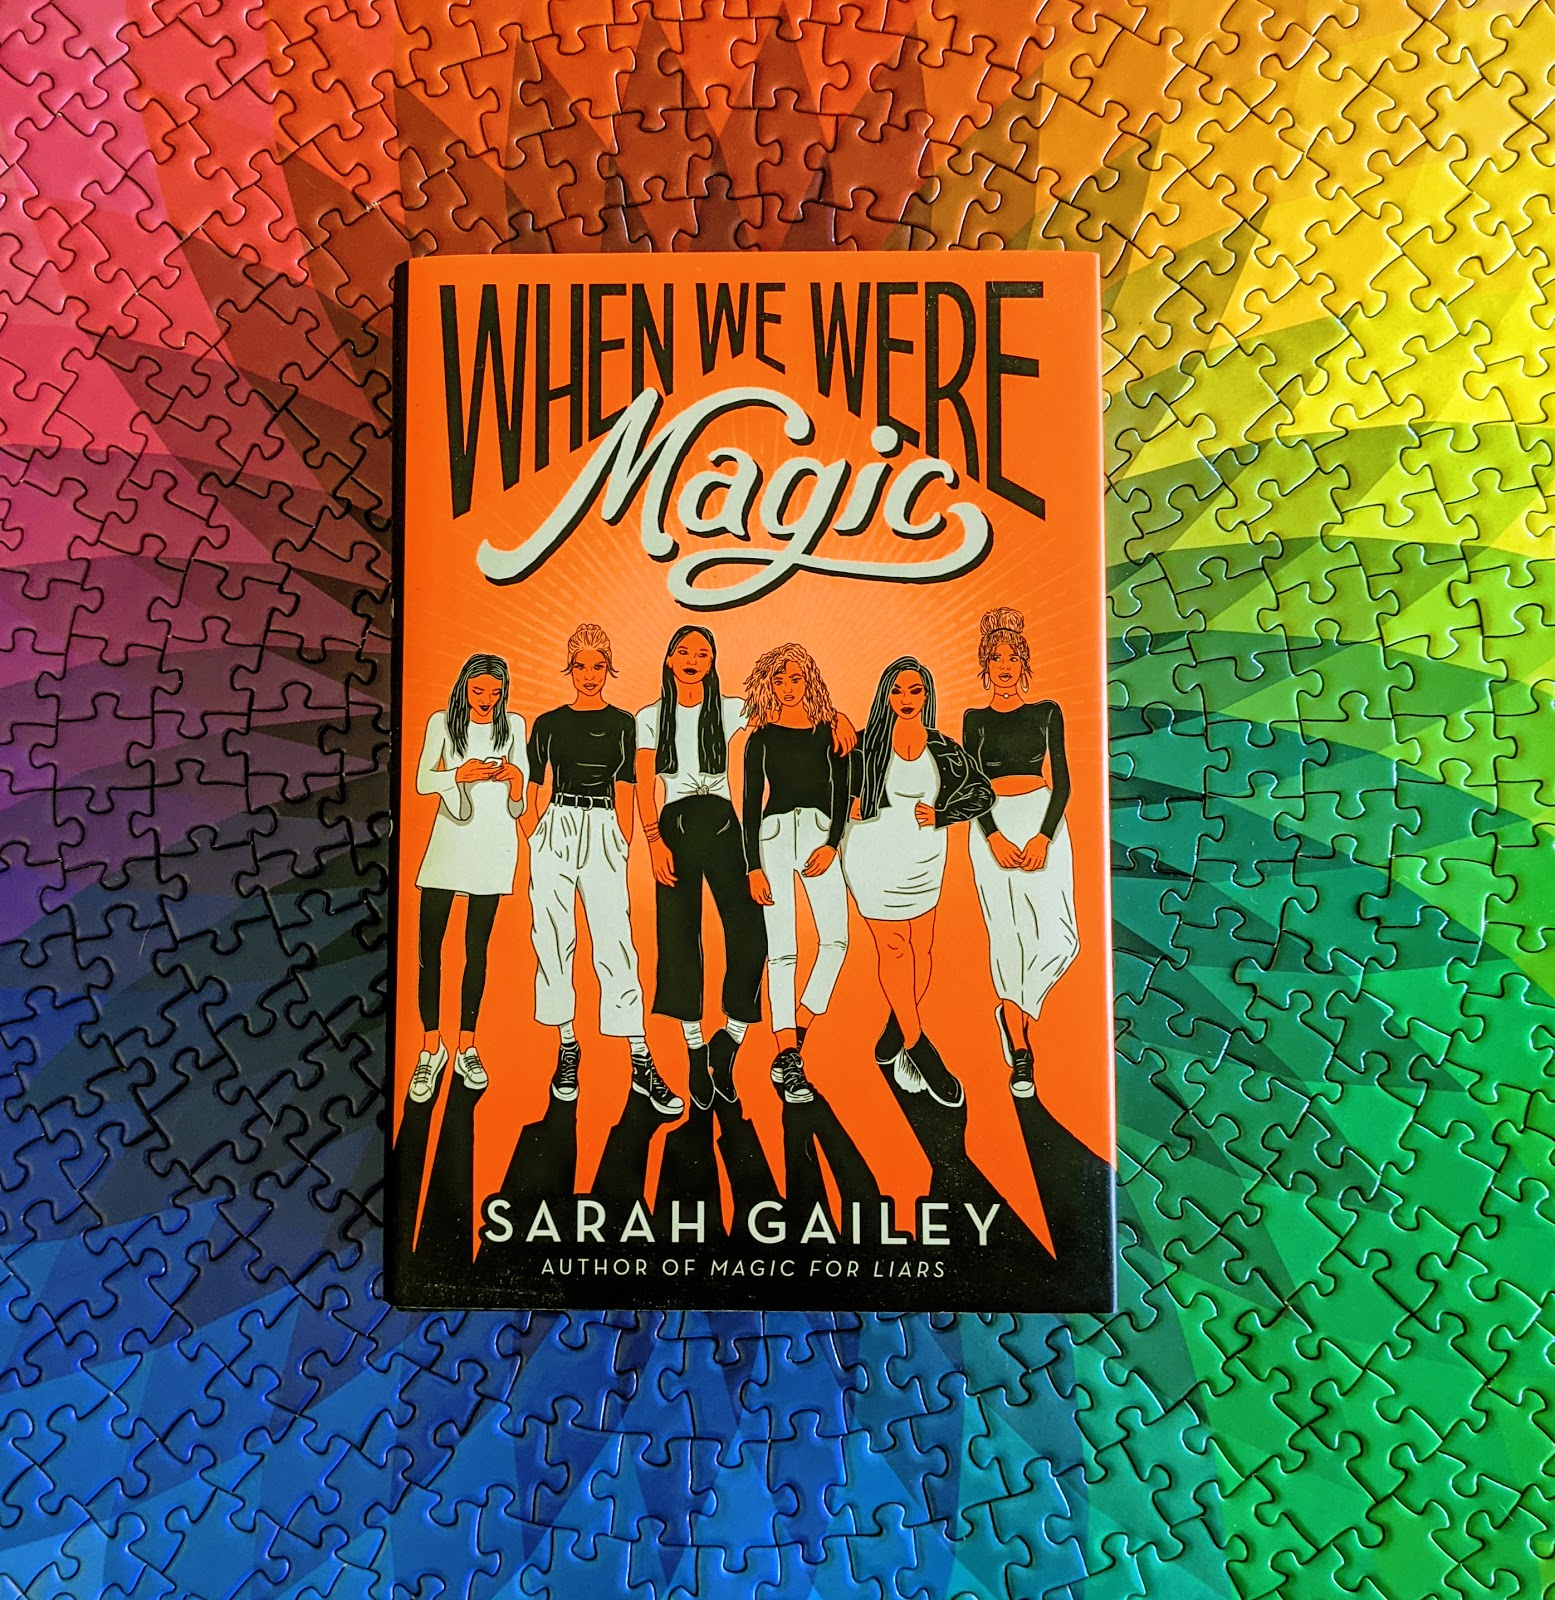 When We Were Magic, a neon orange book featuring six teen femmes in black and white clothing, resting on top of a puzzle that is a rainbow spirograph.